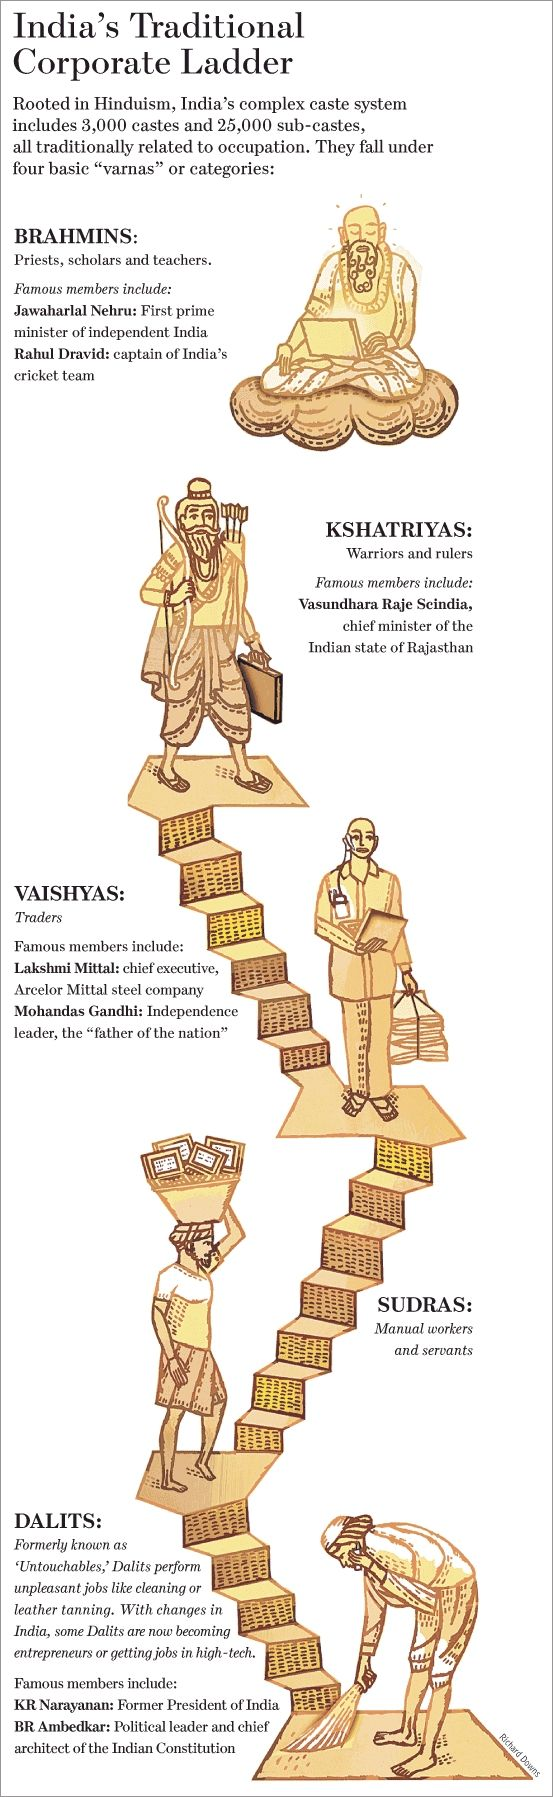 describing the traditional caste system in india